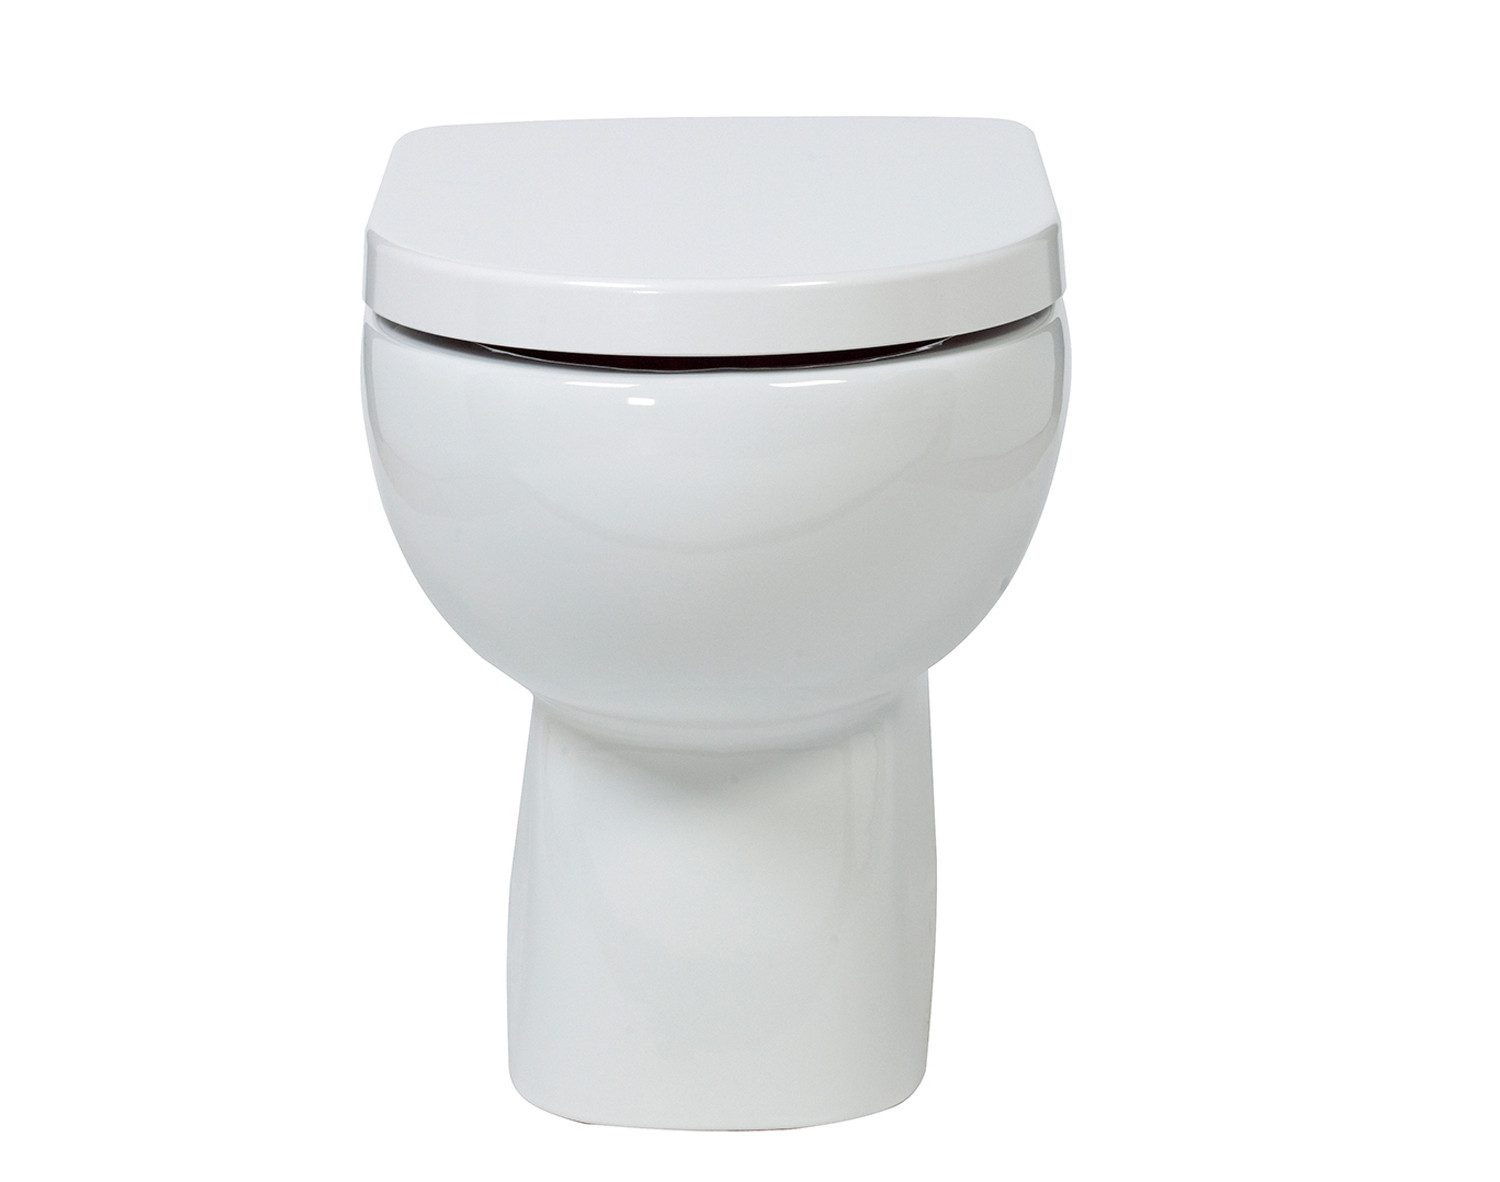 Tonique Back-to-Wall Toilet with Soft-Close Seat